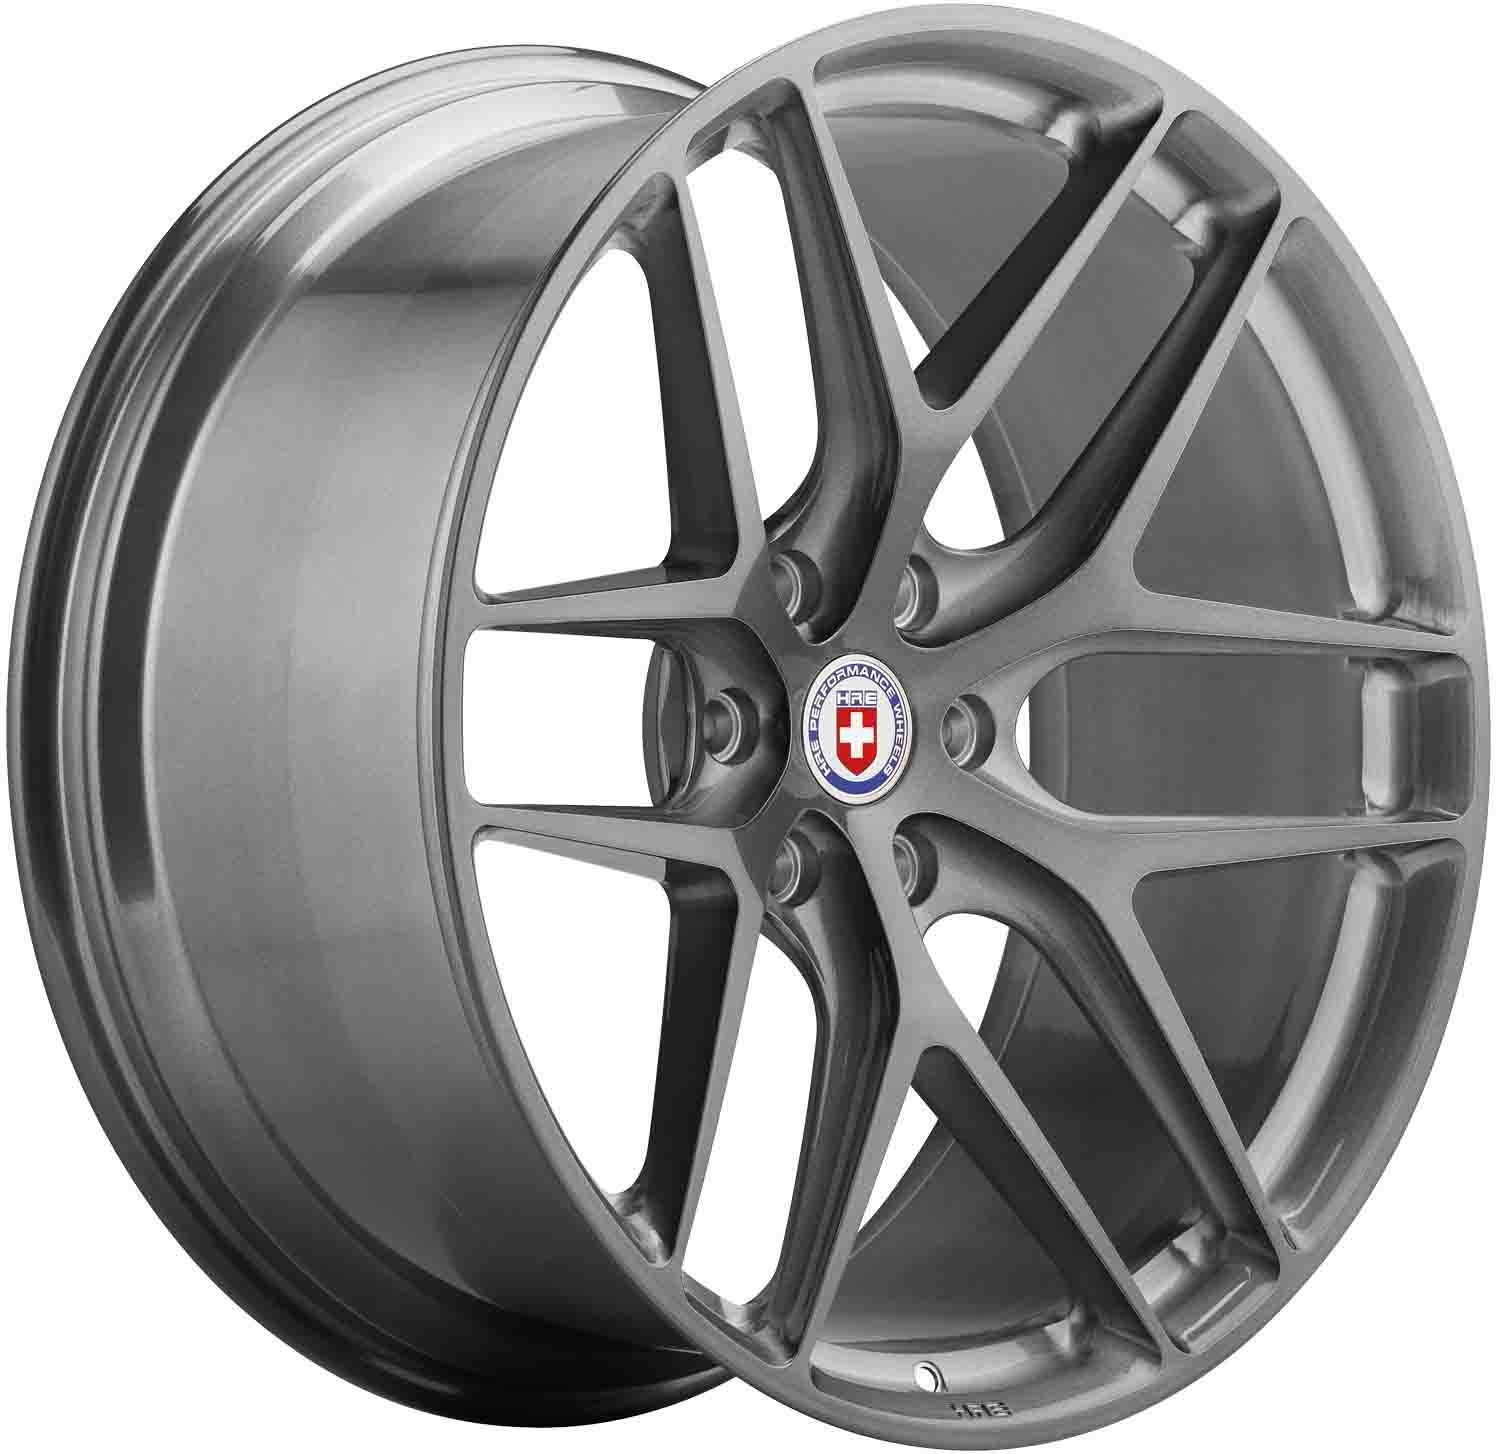 HRE P161 (P1 Series) forged wheels